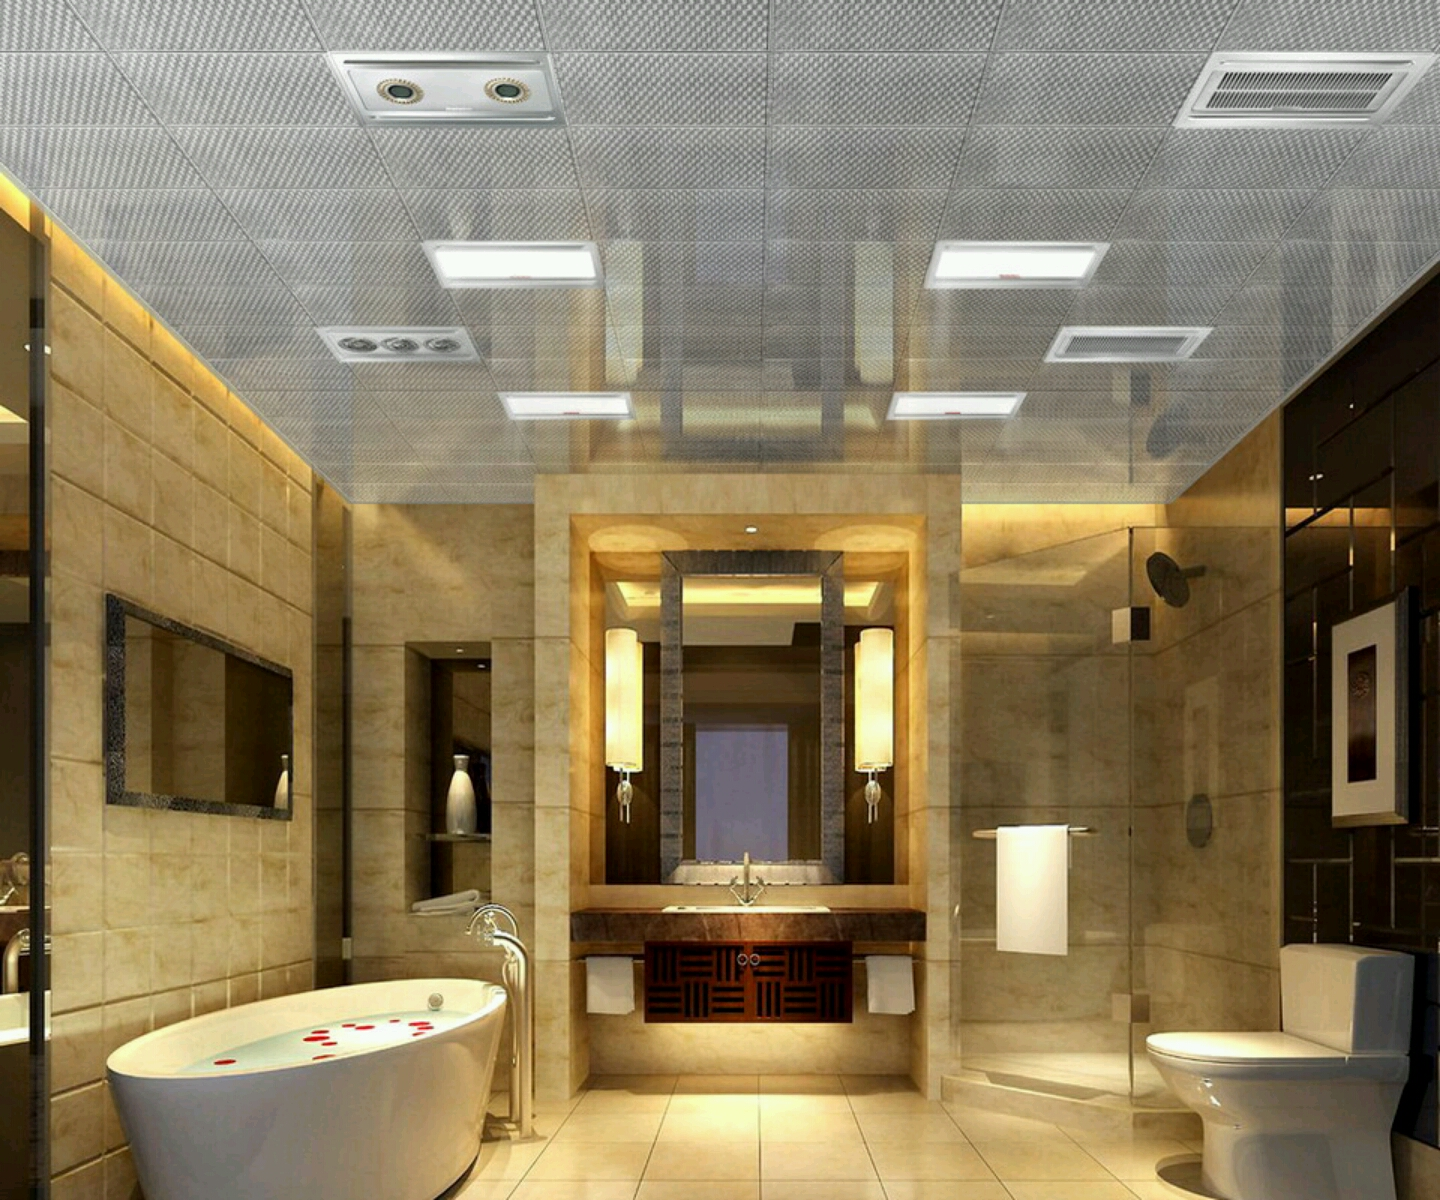 New home designs latest luxury bathrooms designs ideas for Bathroom ideas and designs